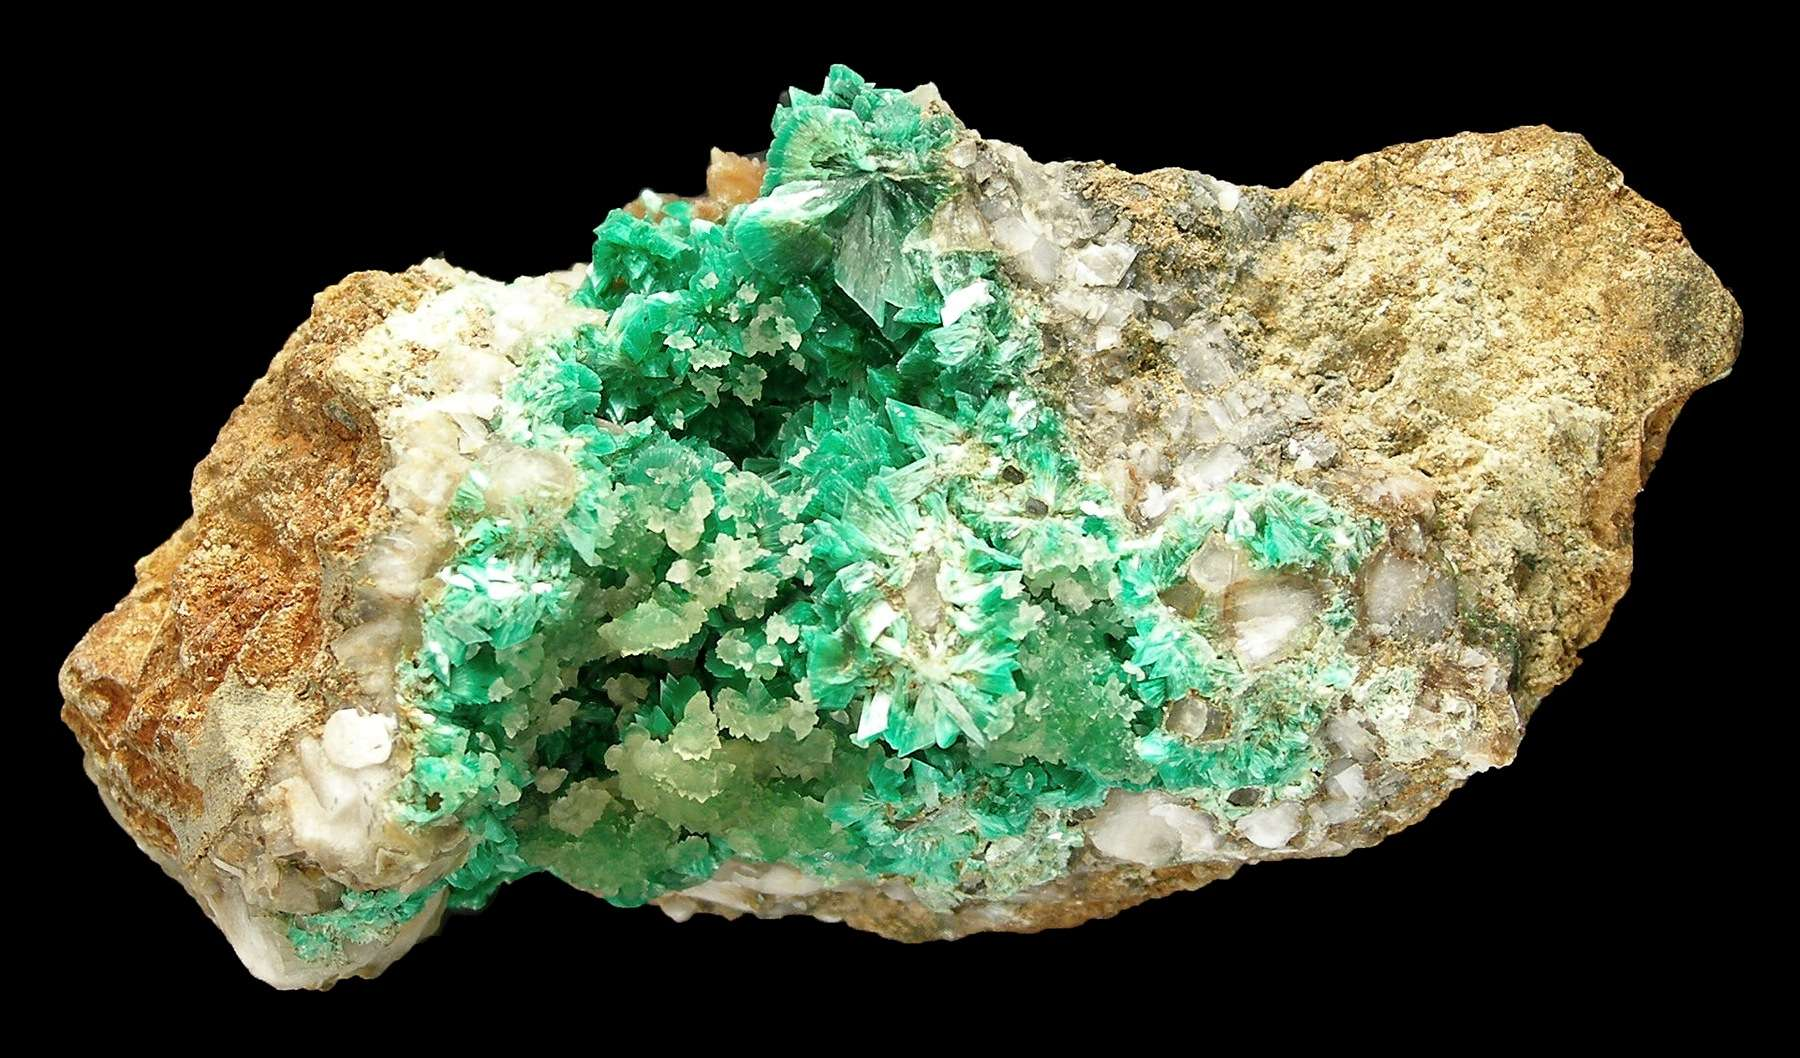 This MAJOR annabergite specimen huge crystal clusters nearly 1 cm